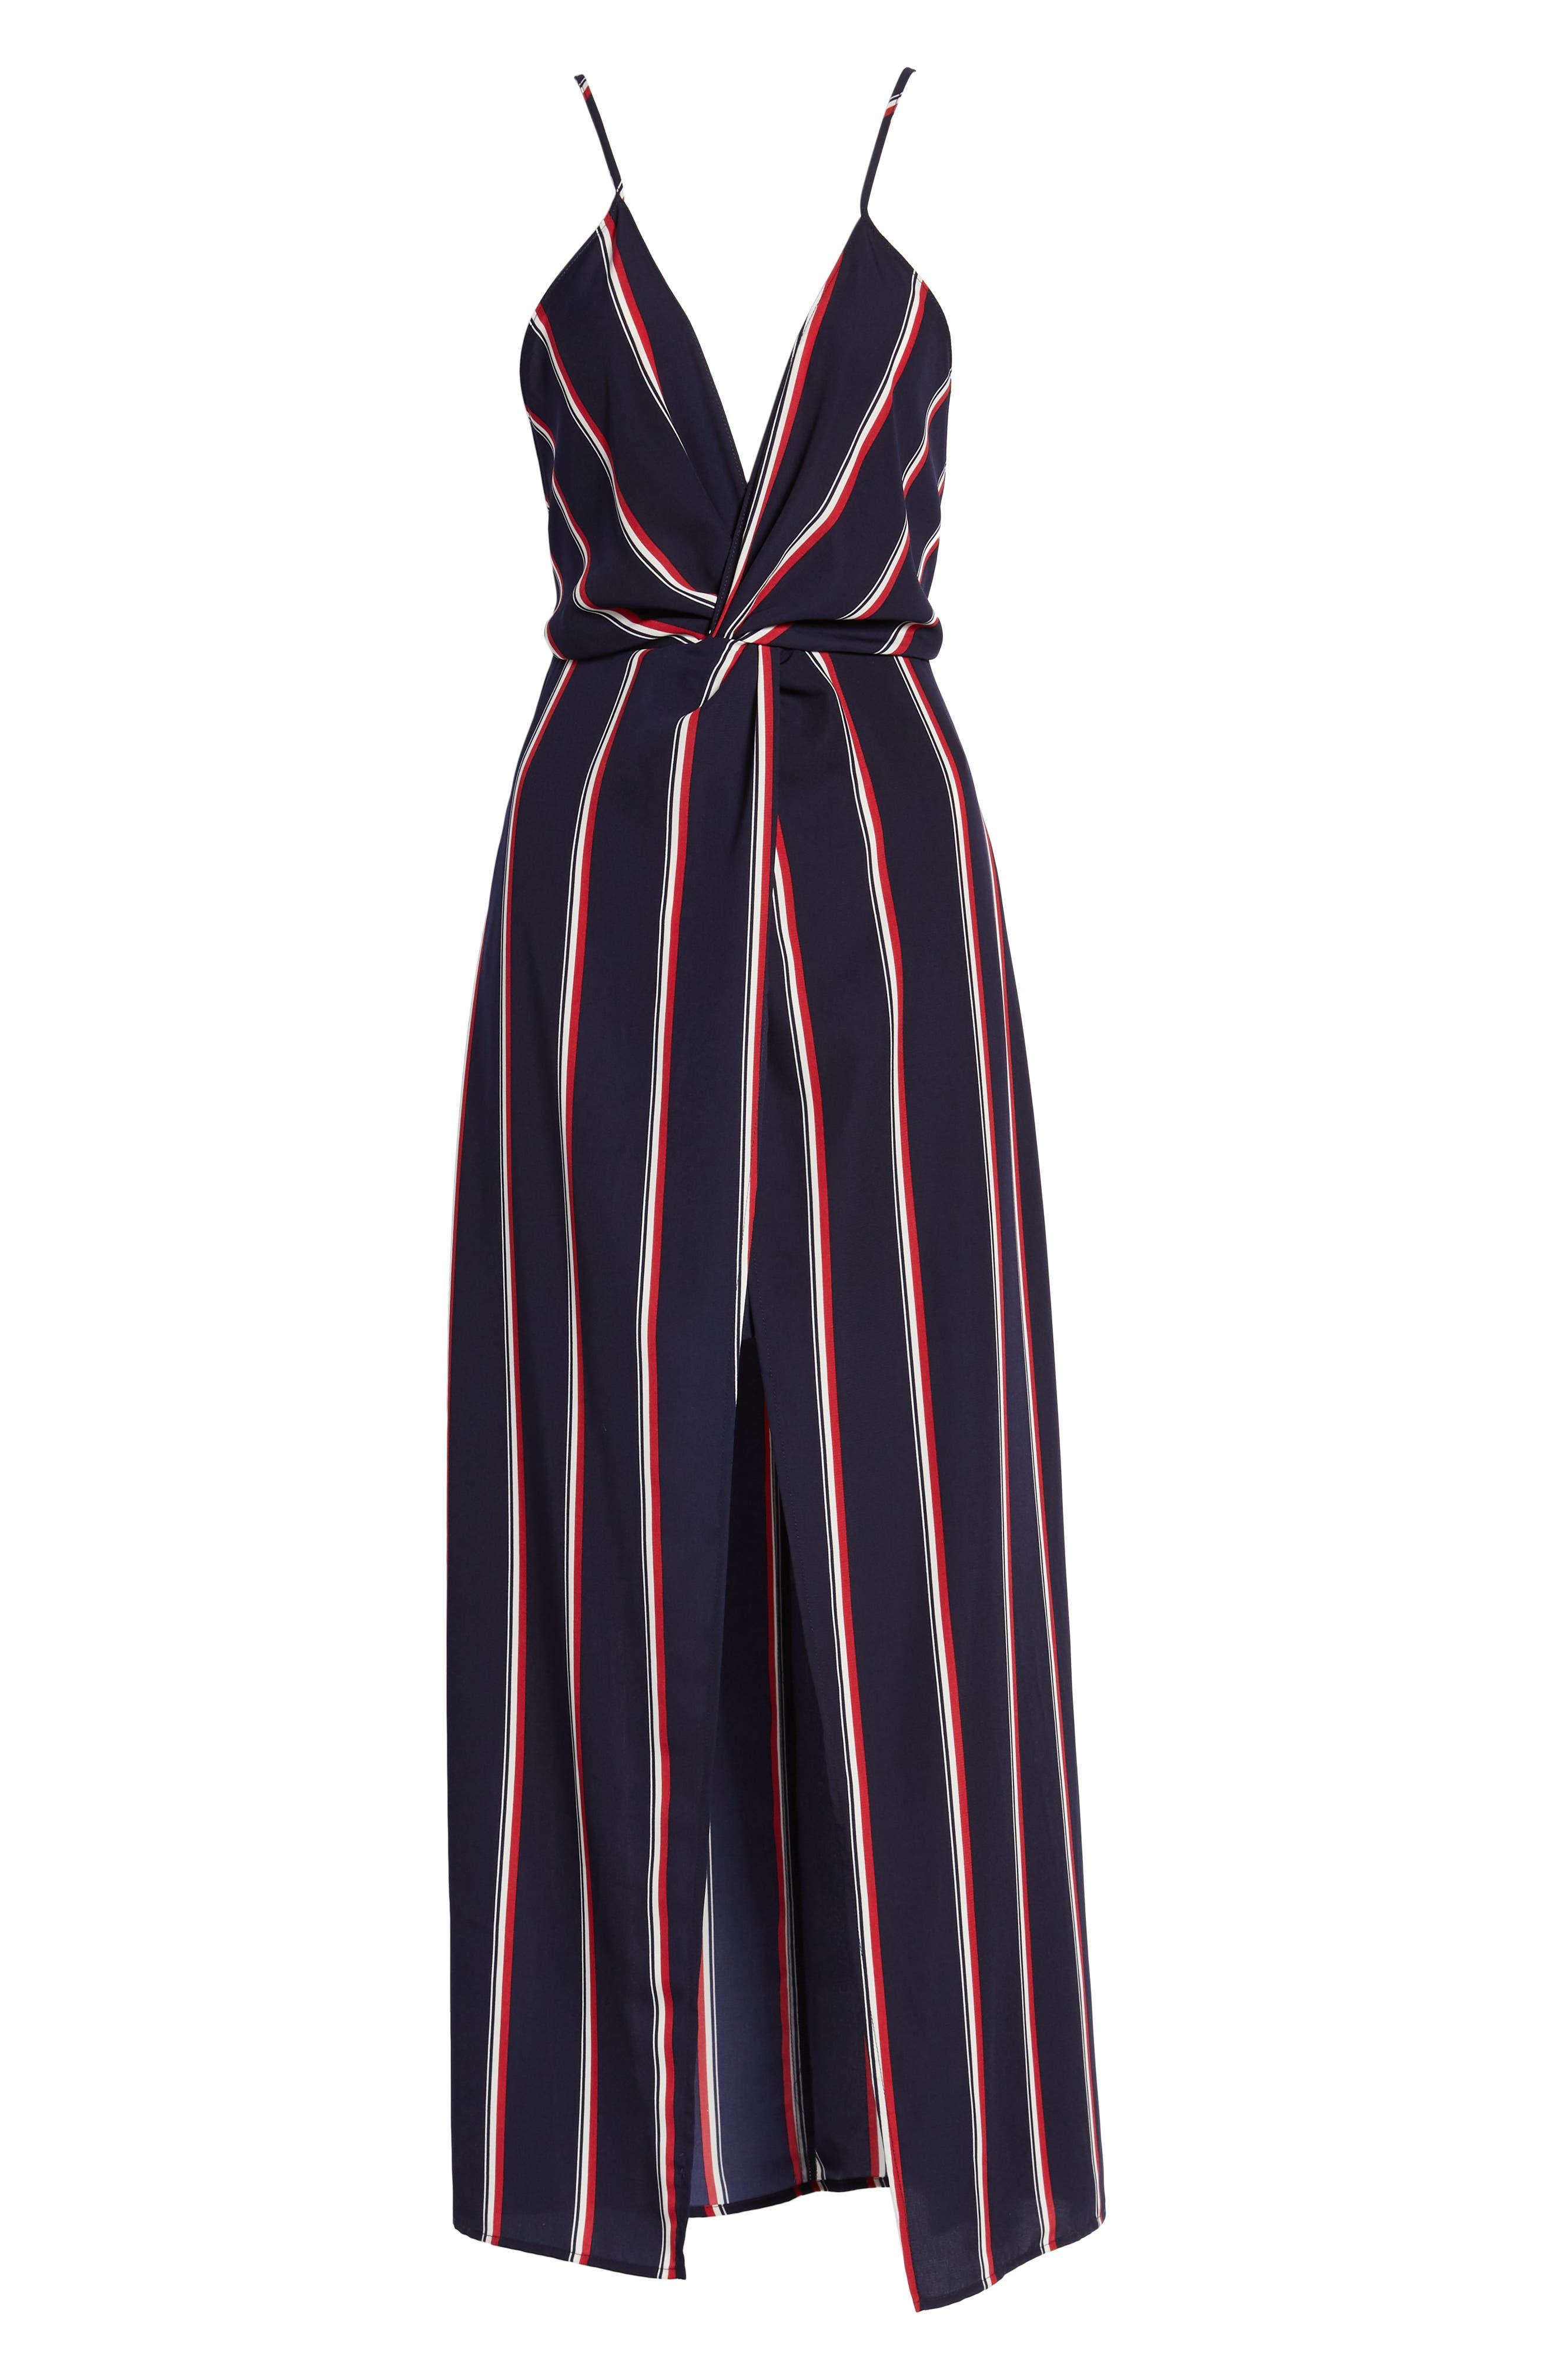 Print Maxi Dress,                             Alternate thumbnail 6, color,                             Navy/ Red Stripe